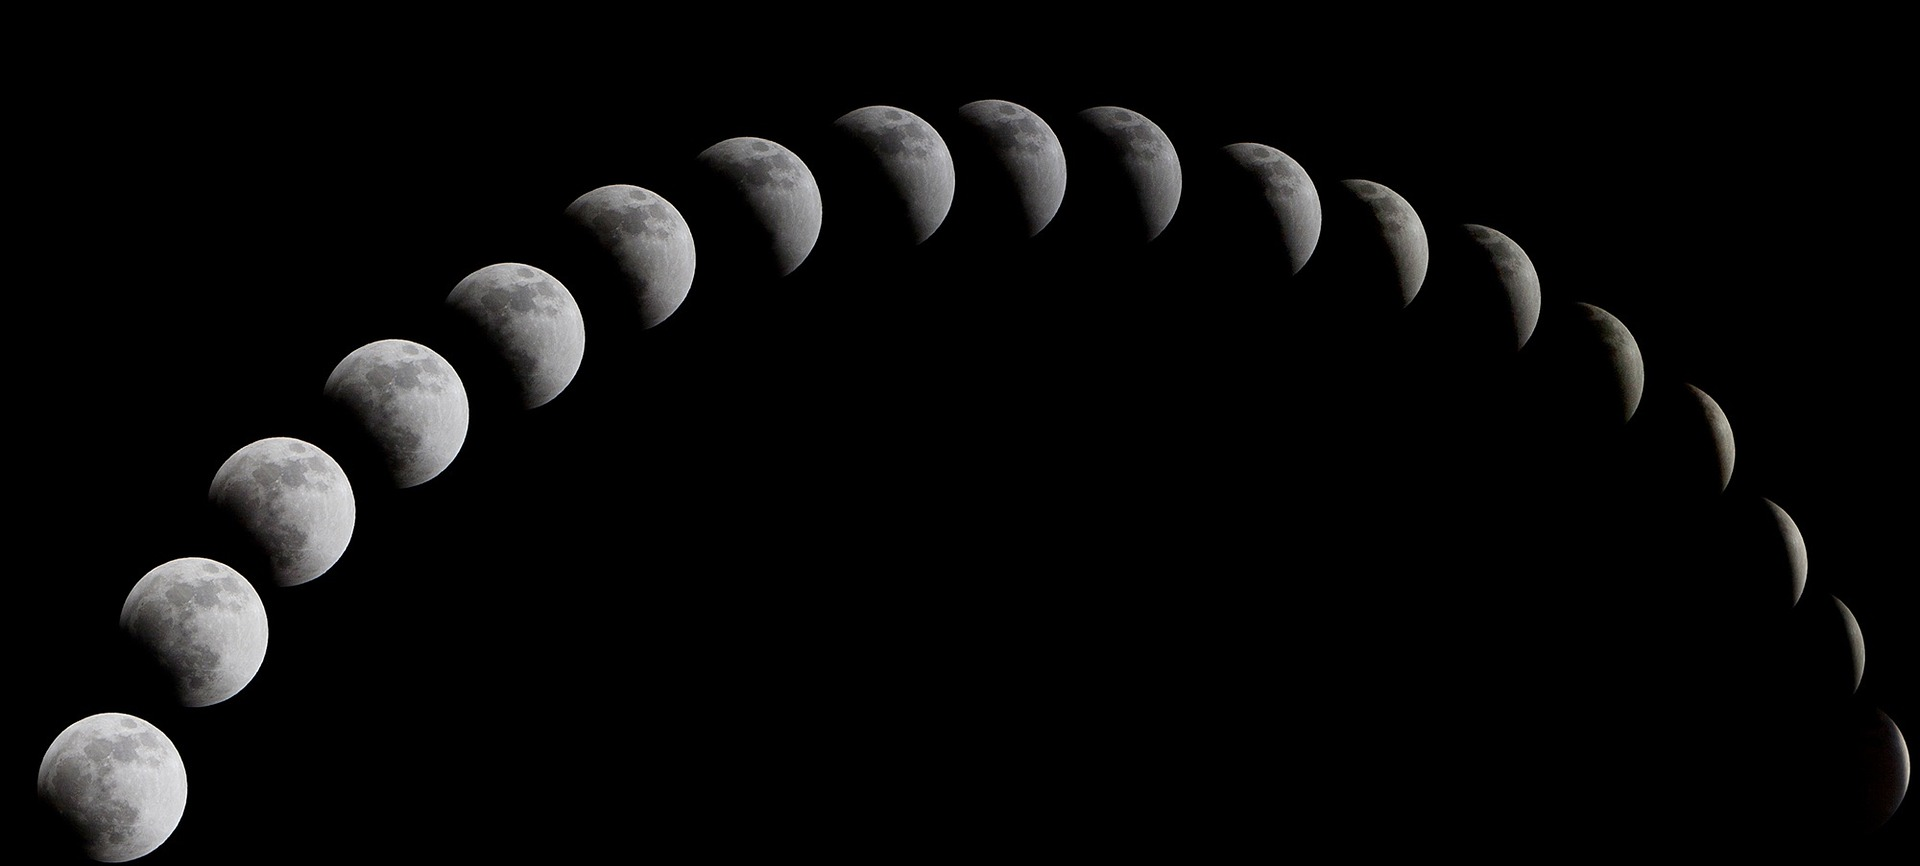 different photos of moons at different phases